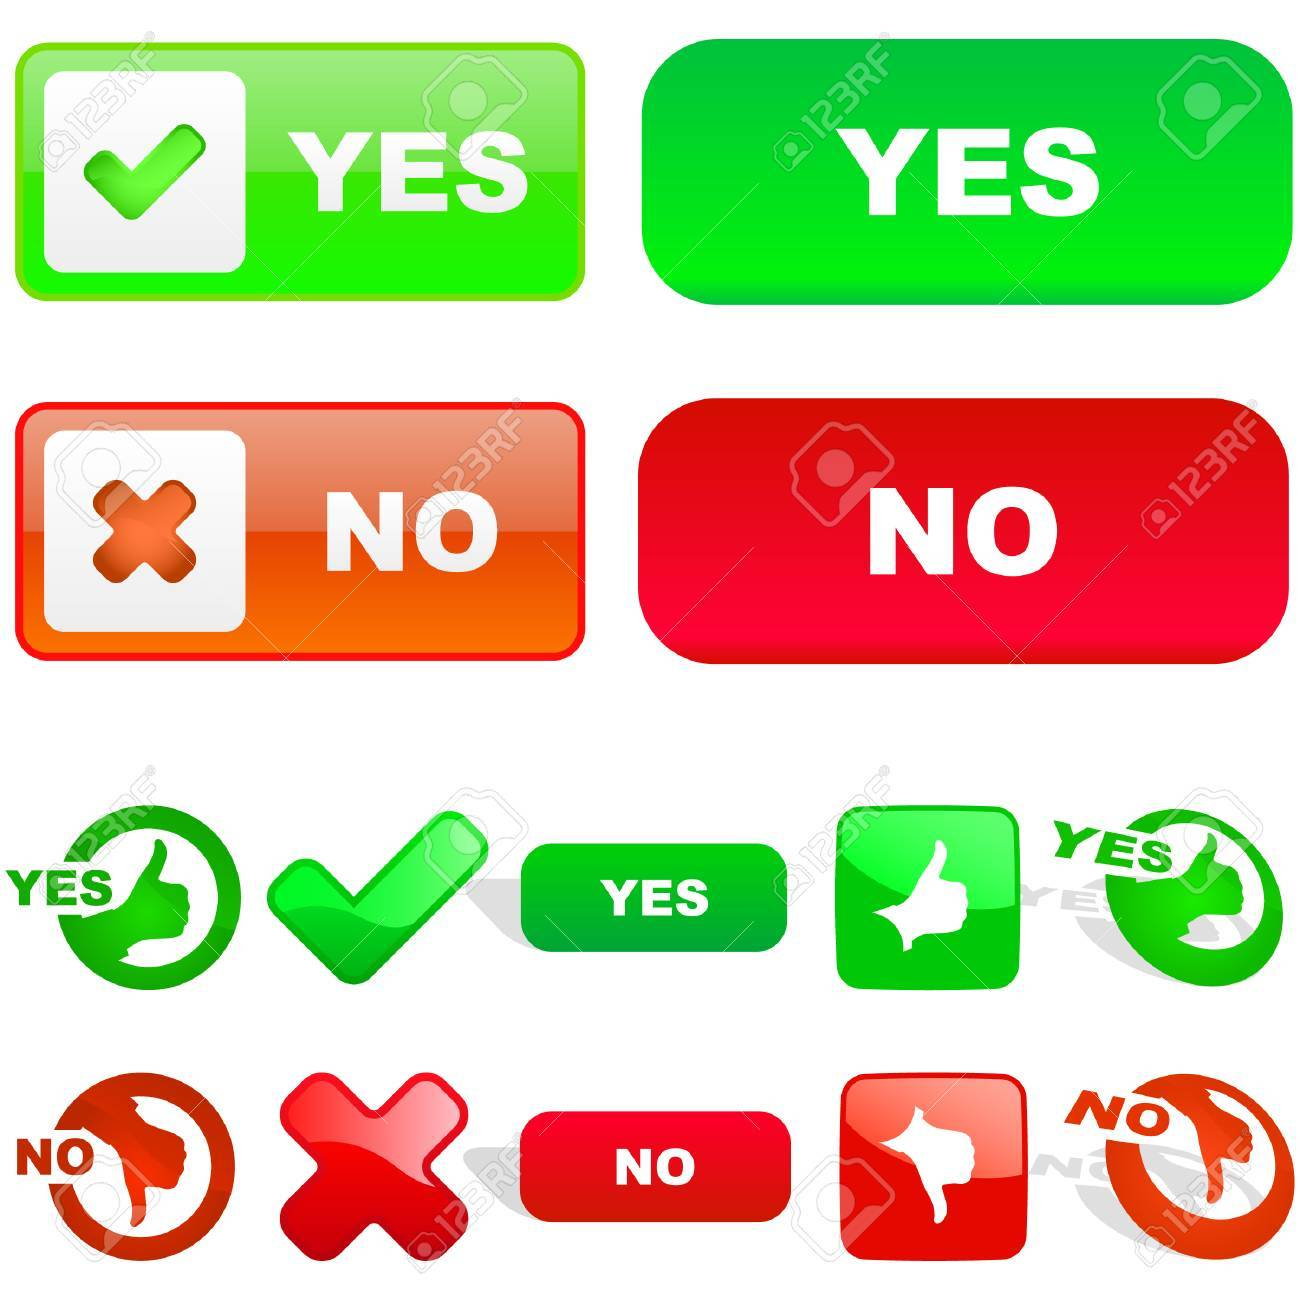 Yes and No icon. Vector beautiful icon set. Stock Vector - 6095303